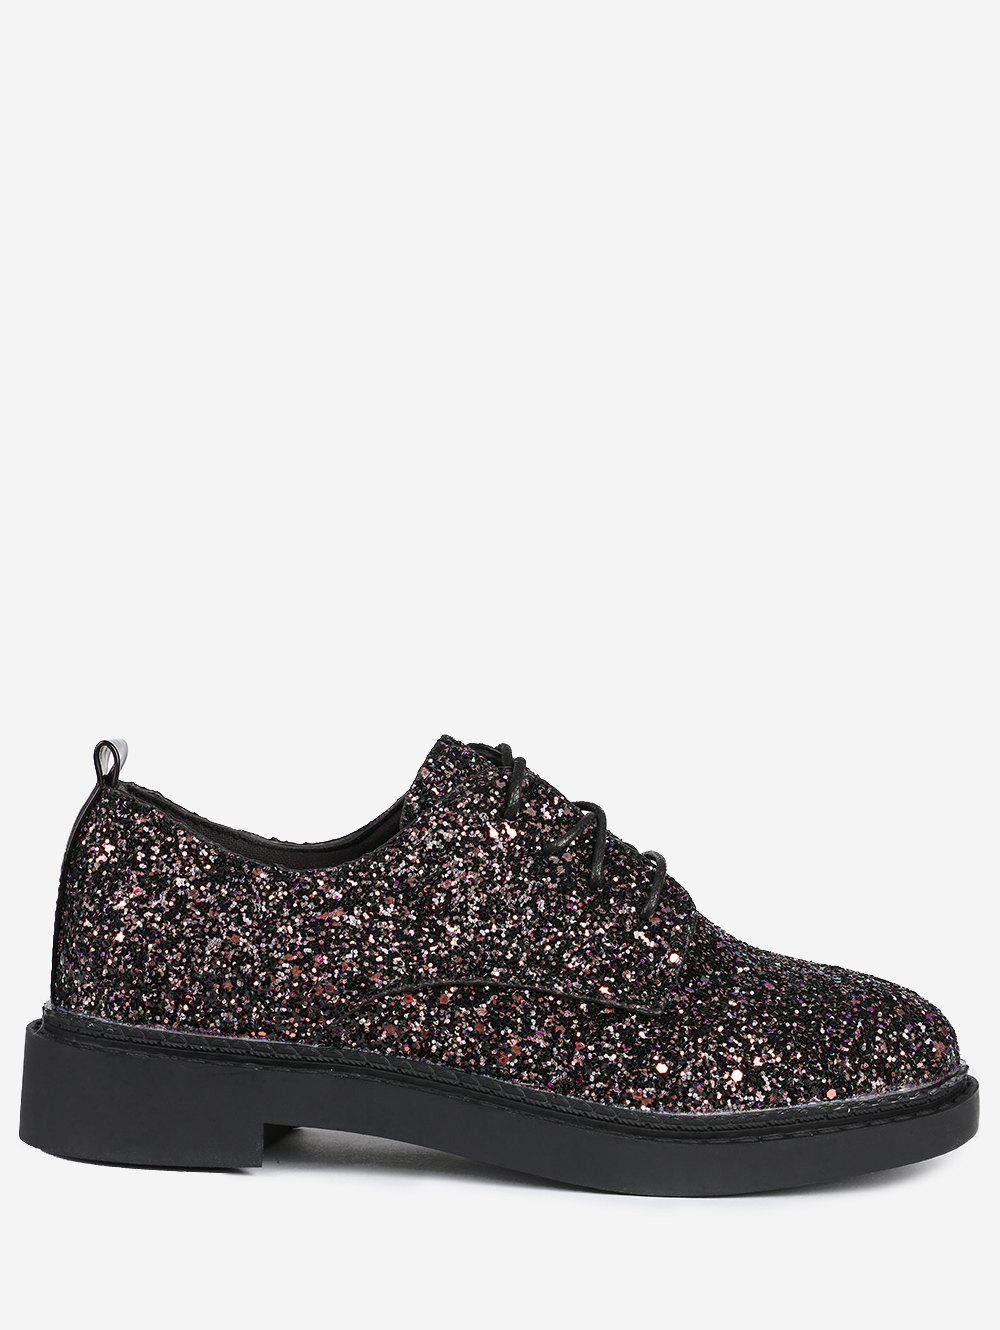 Store Tie Up Low Top Glitter Flat Shoes